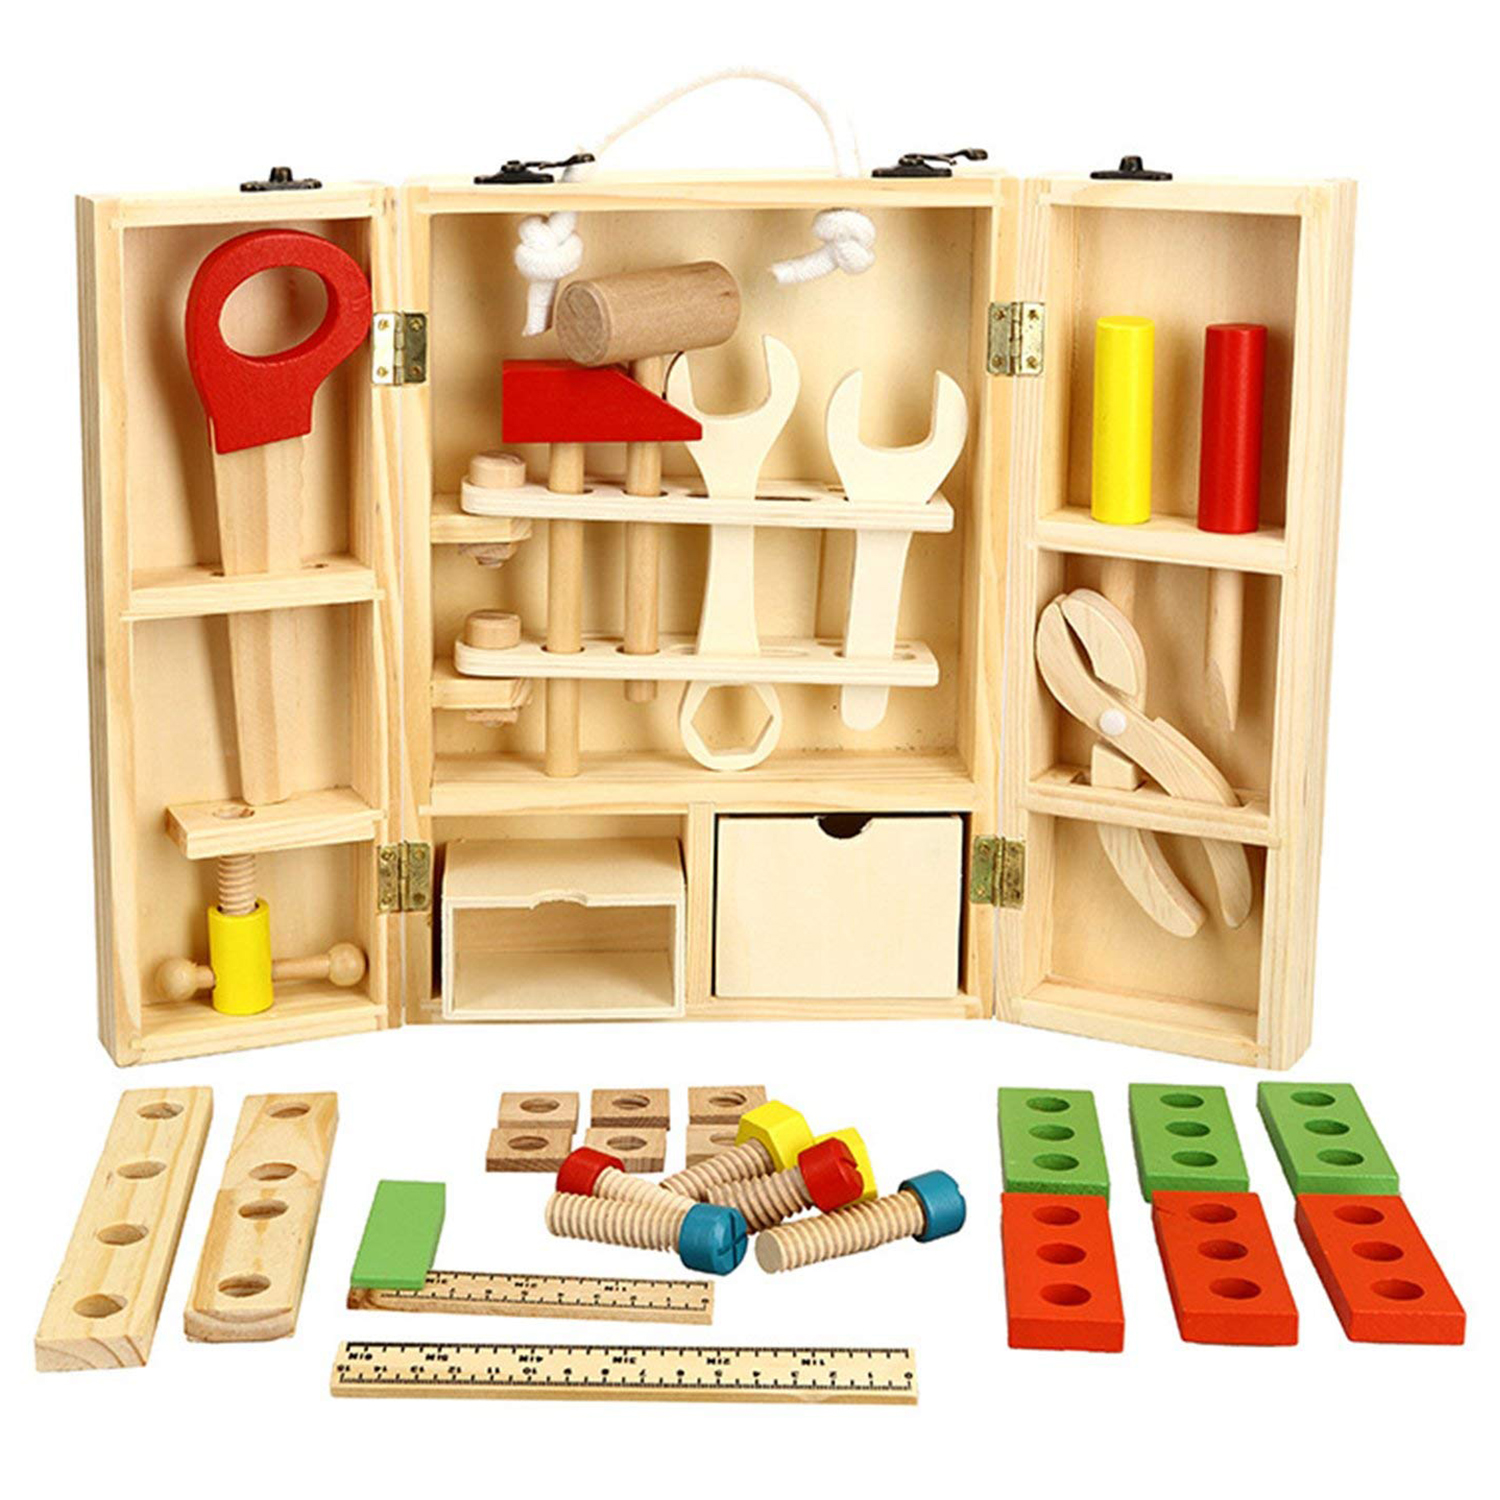 WOTT Wooden Tool Toys Pretend Play Tool Box Accessories Set Educational Construction Toys Kids